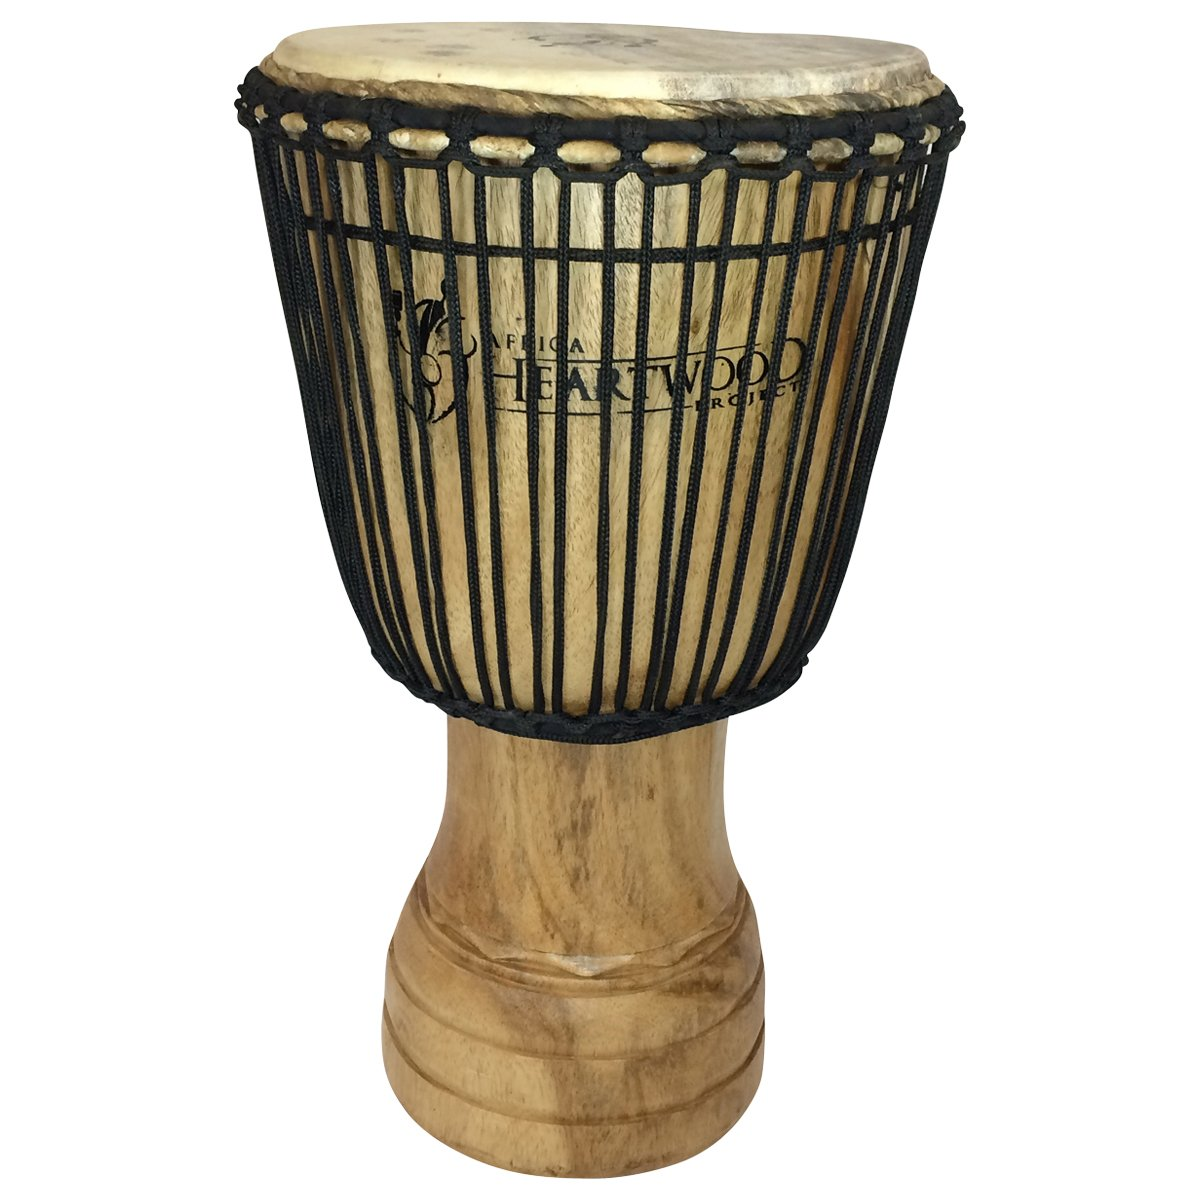 Hand-carved Djembe Drum From Africa - 13''x24'' Classic Ghana Djembe